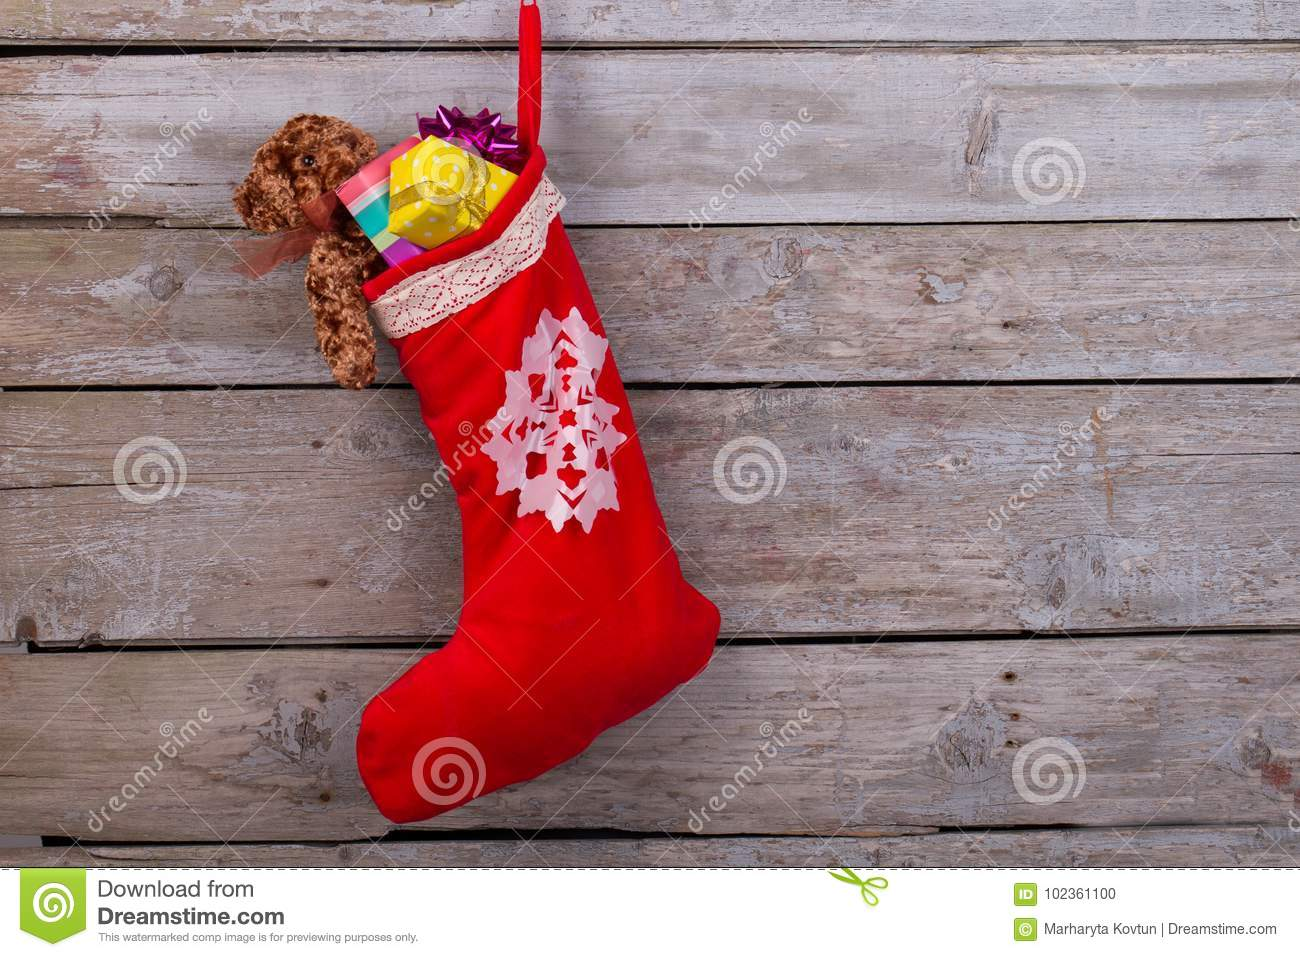 Red stocking filled with gifts